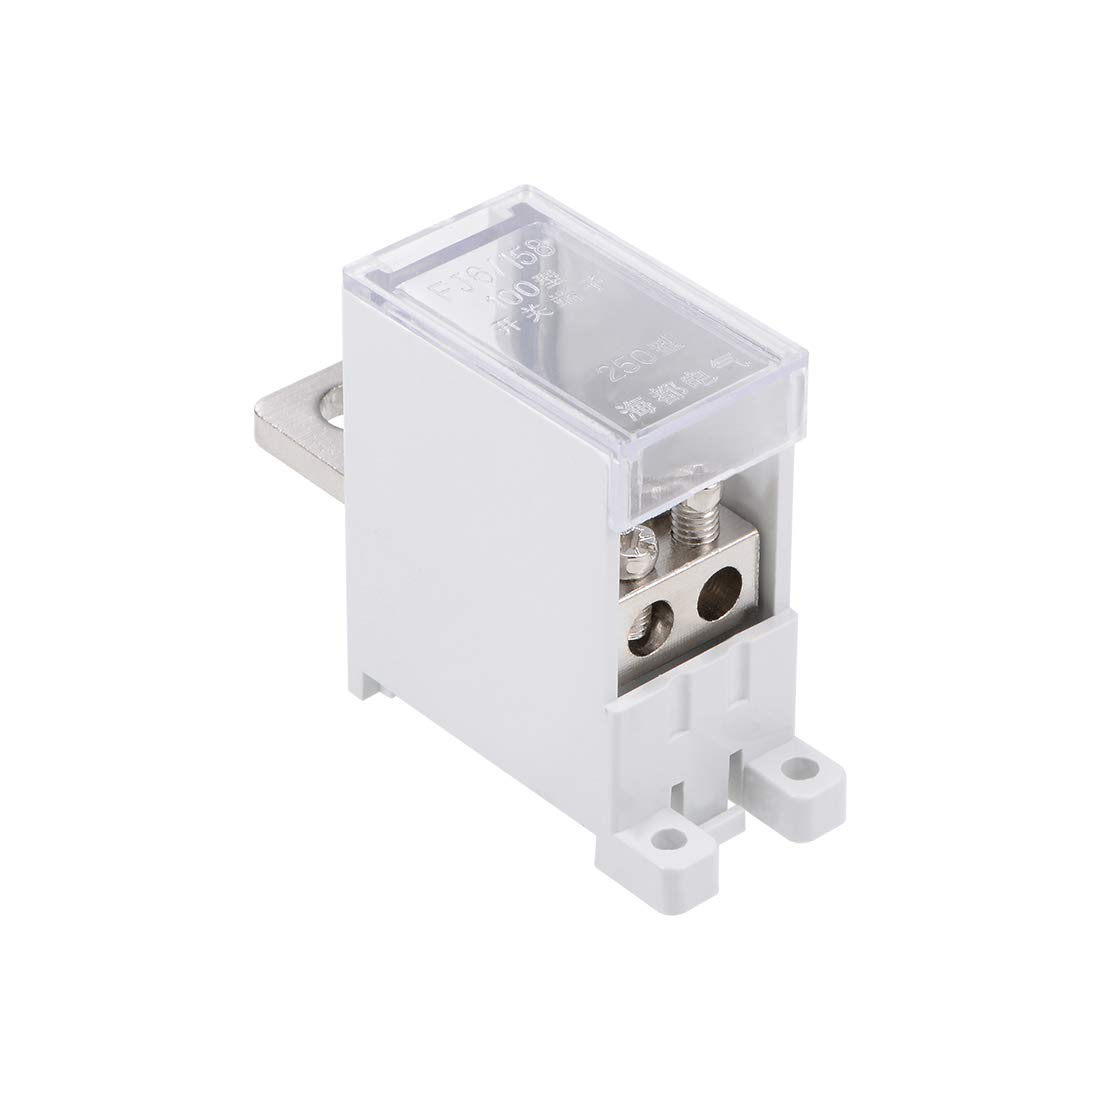 uxcell 1 in 2 Out DIN Rail Terminal Blocks 690V 250A Max Input Distribution Block for Circuit Breaker